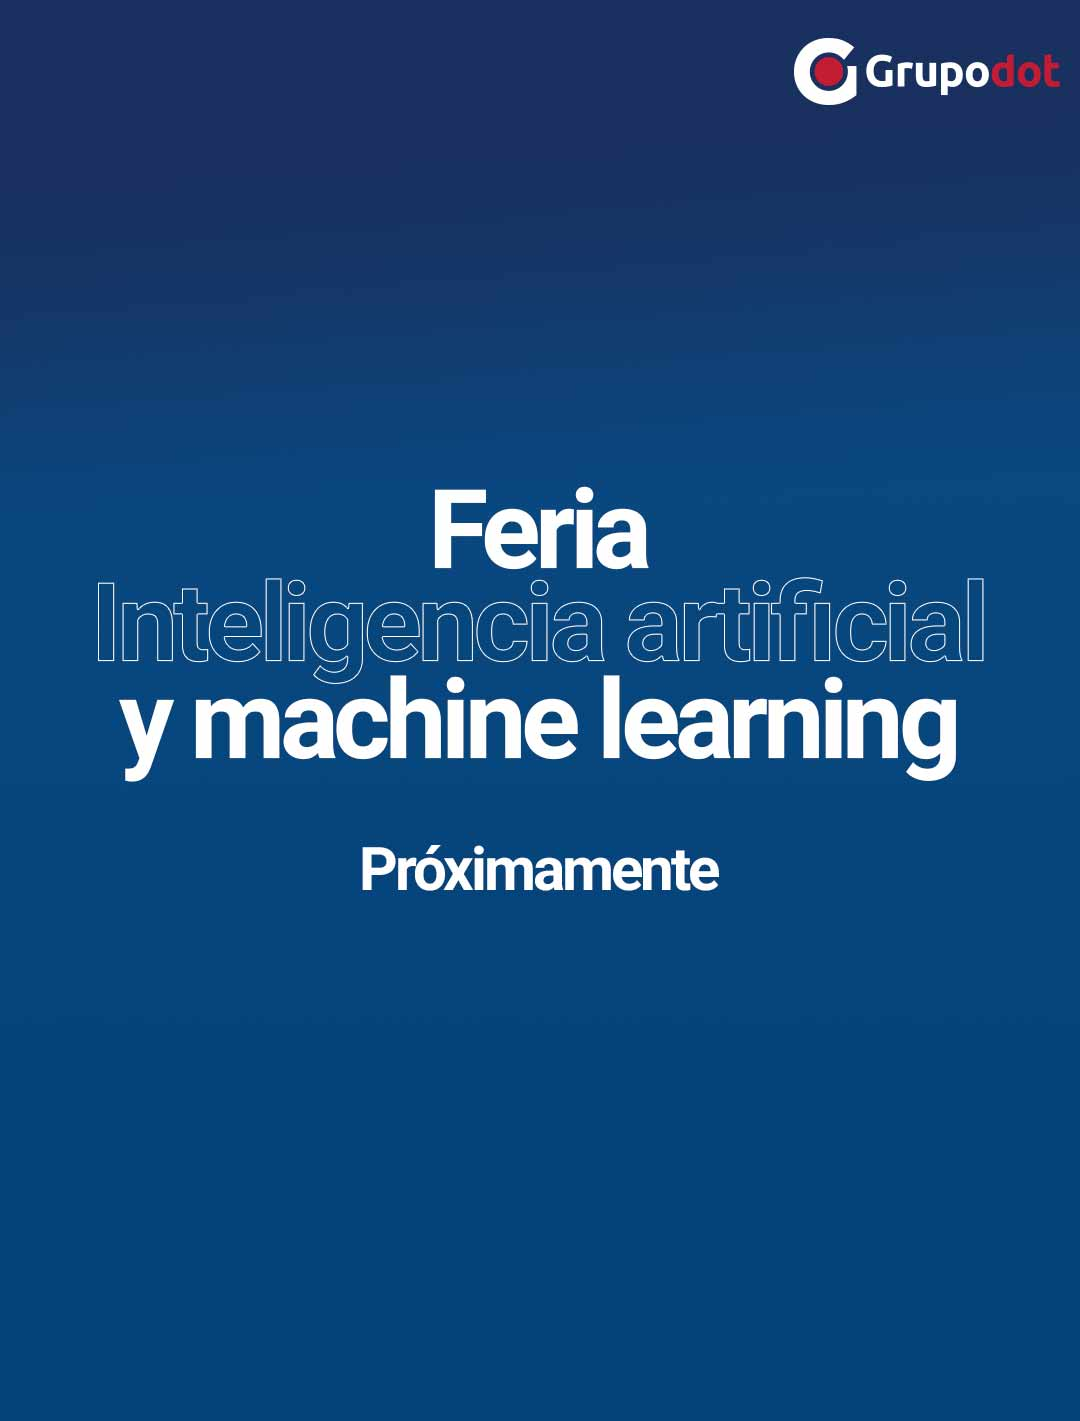 feria inteligencia artificial y machine learning